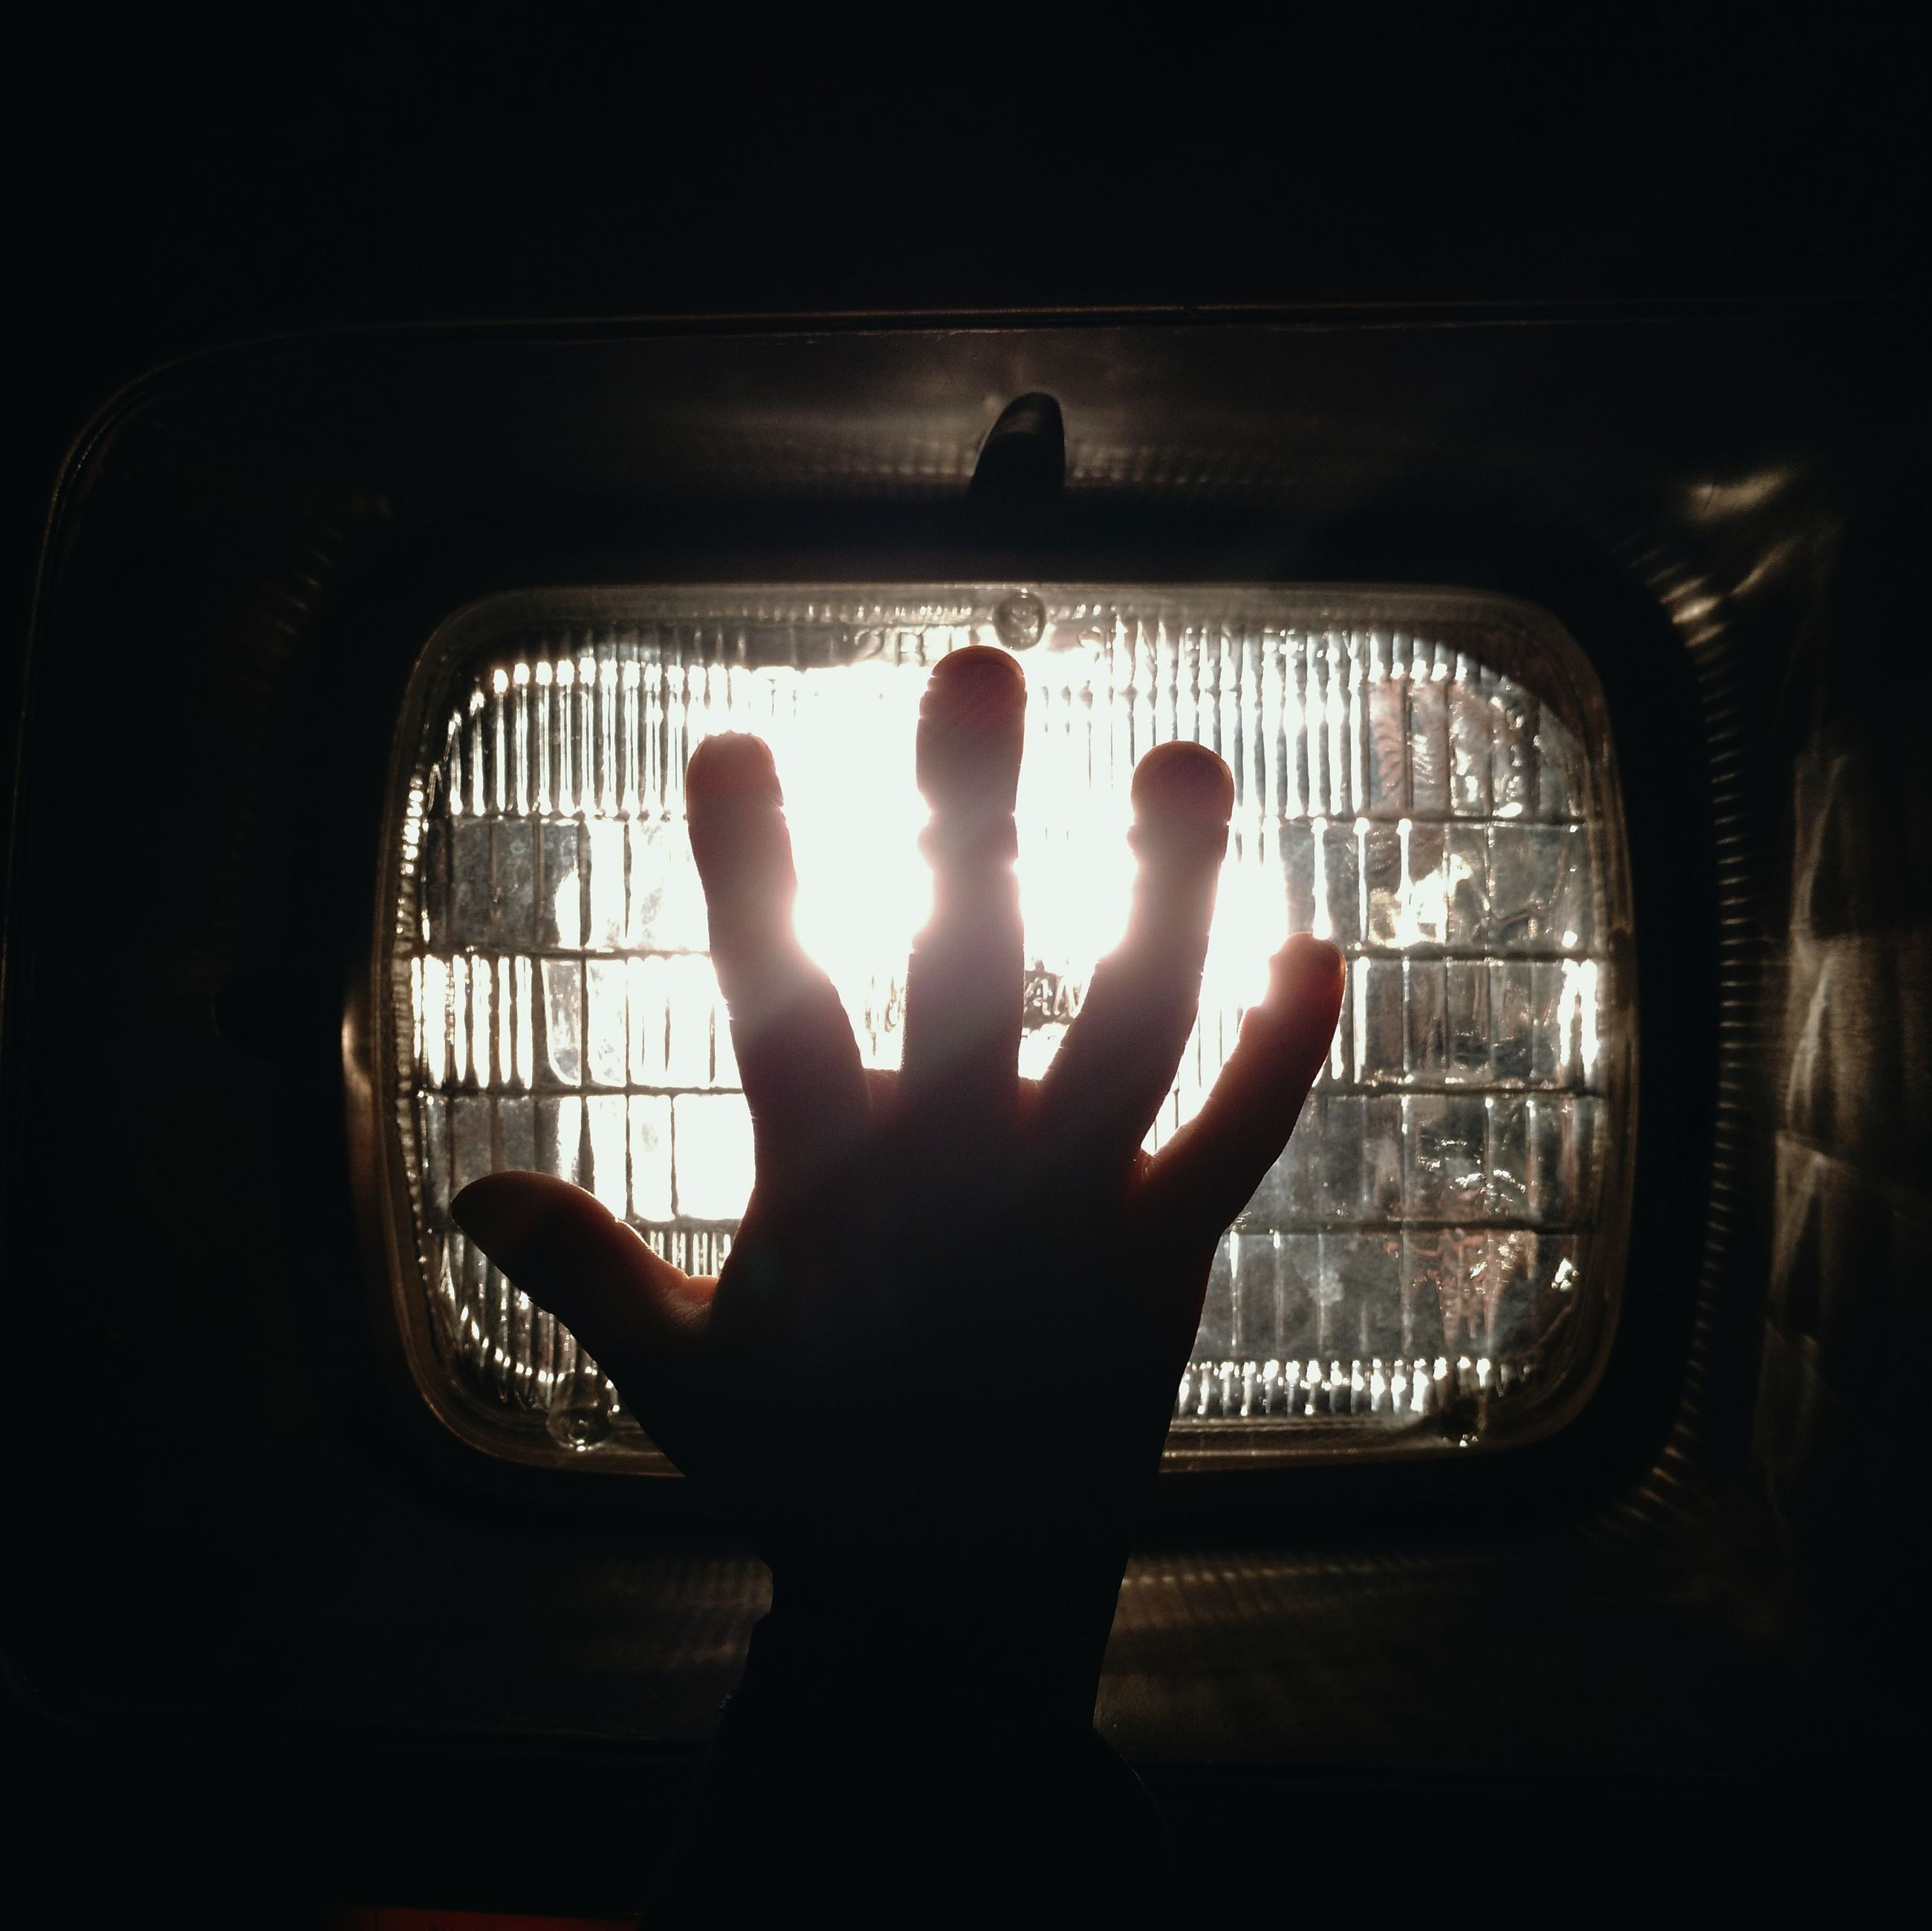 window, one person, real people, indoors, rear view, human body part, human hand, day, adults only, people, adult